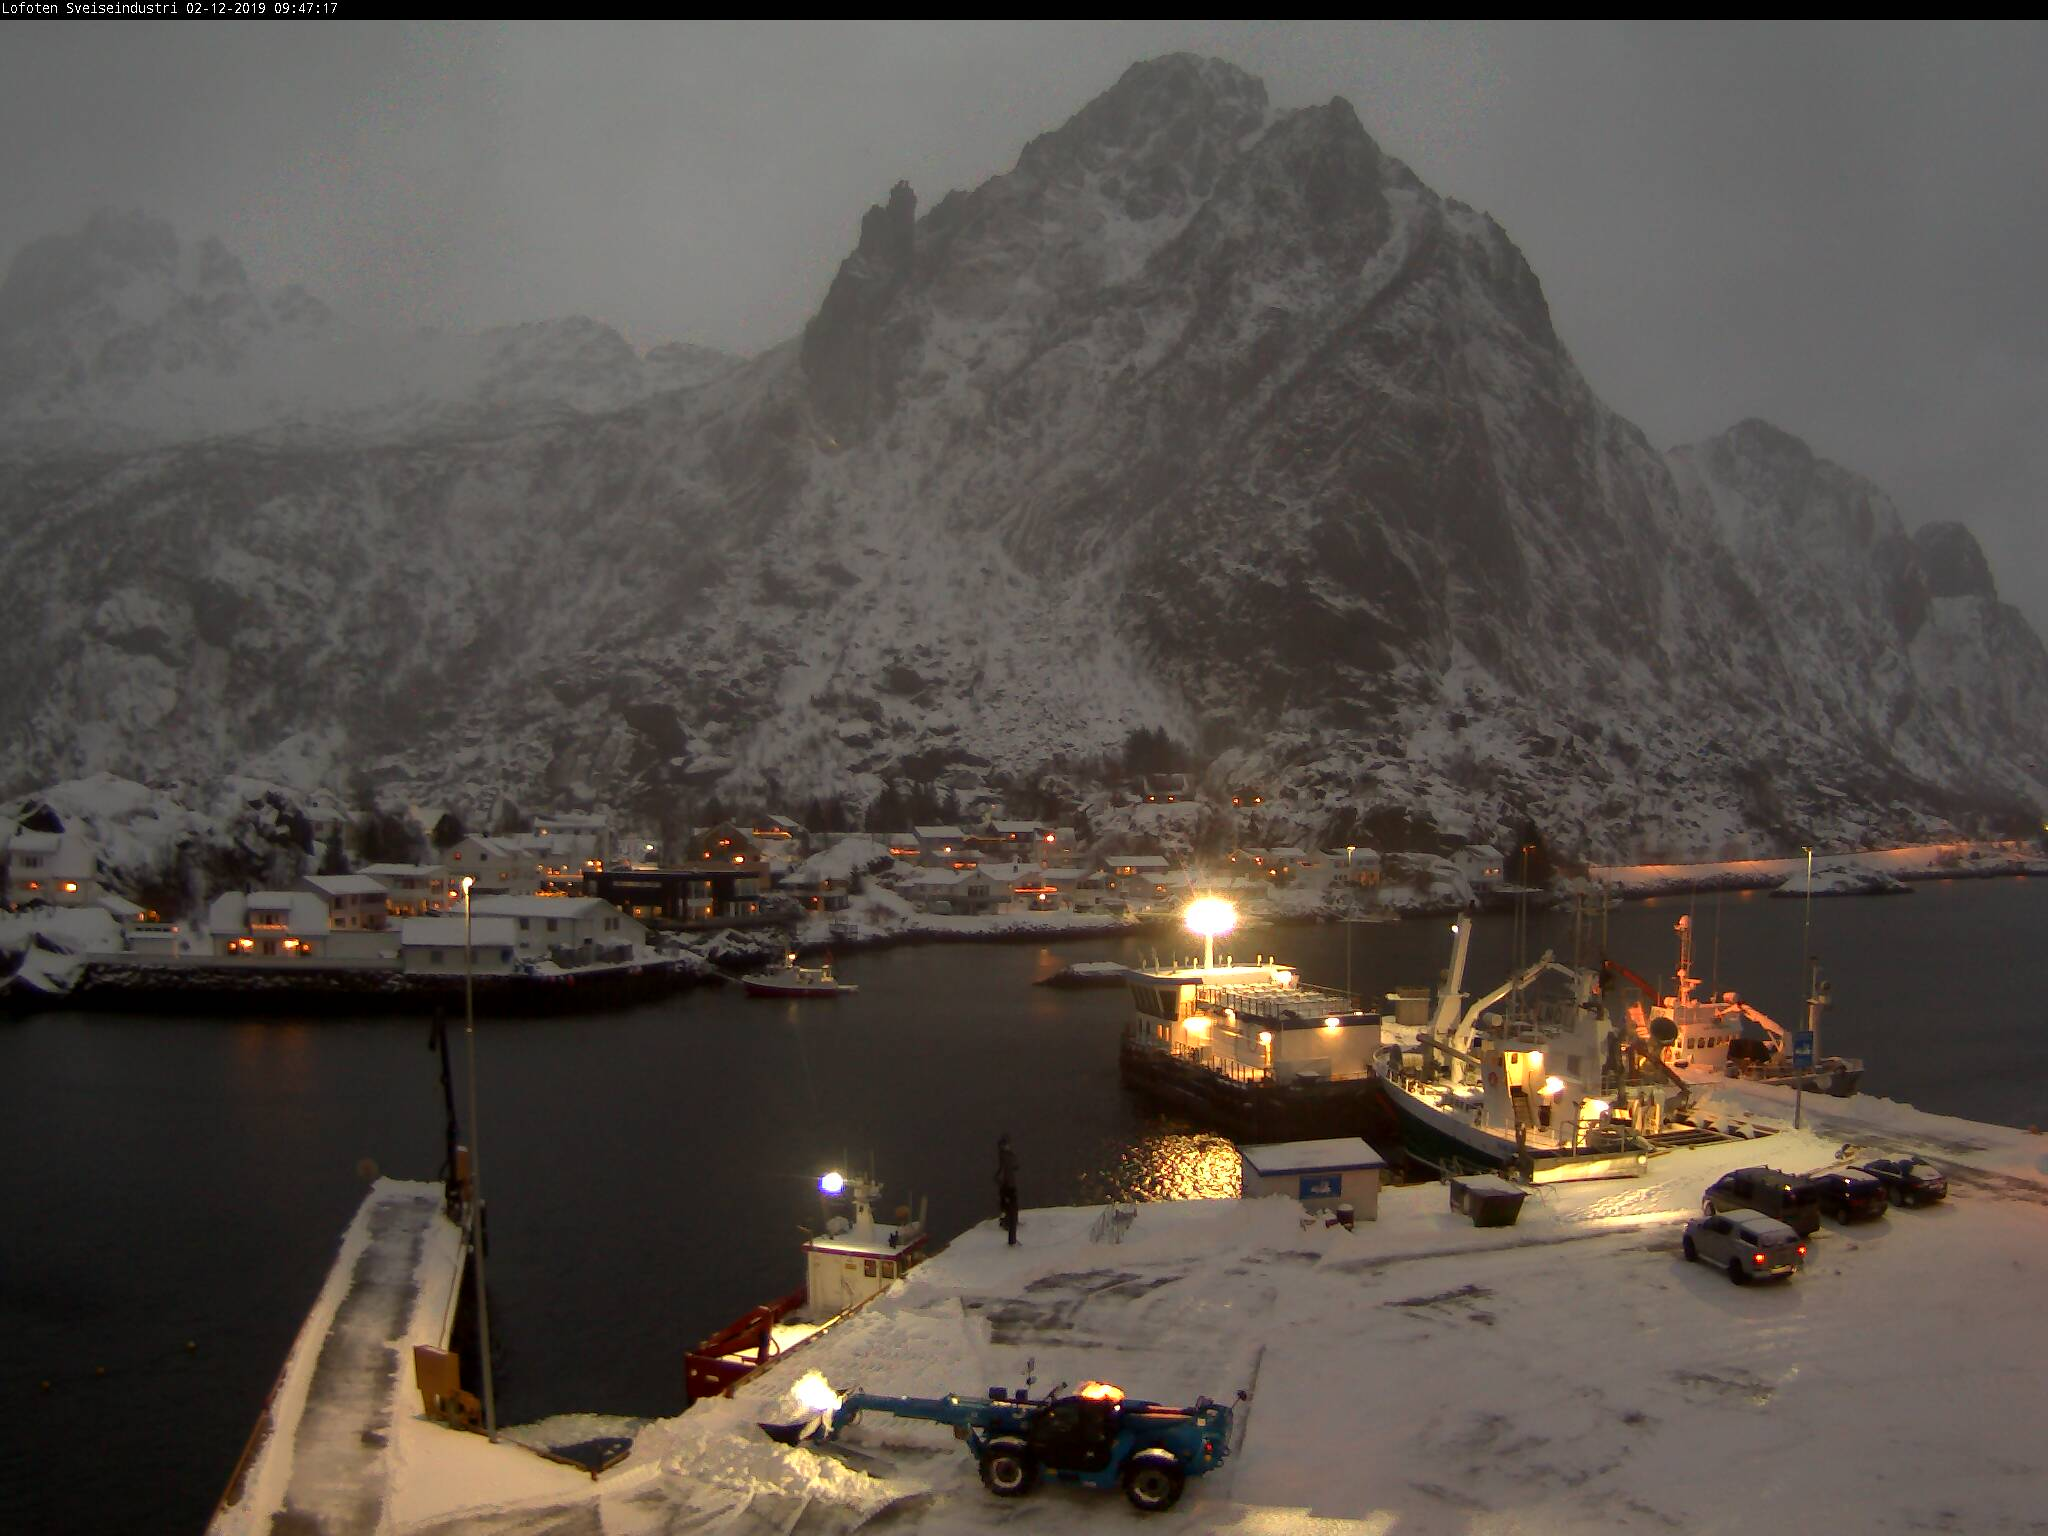 Svolvær - East harbour